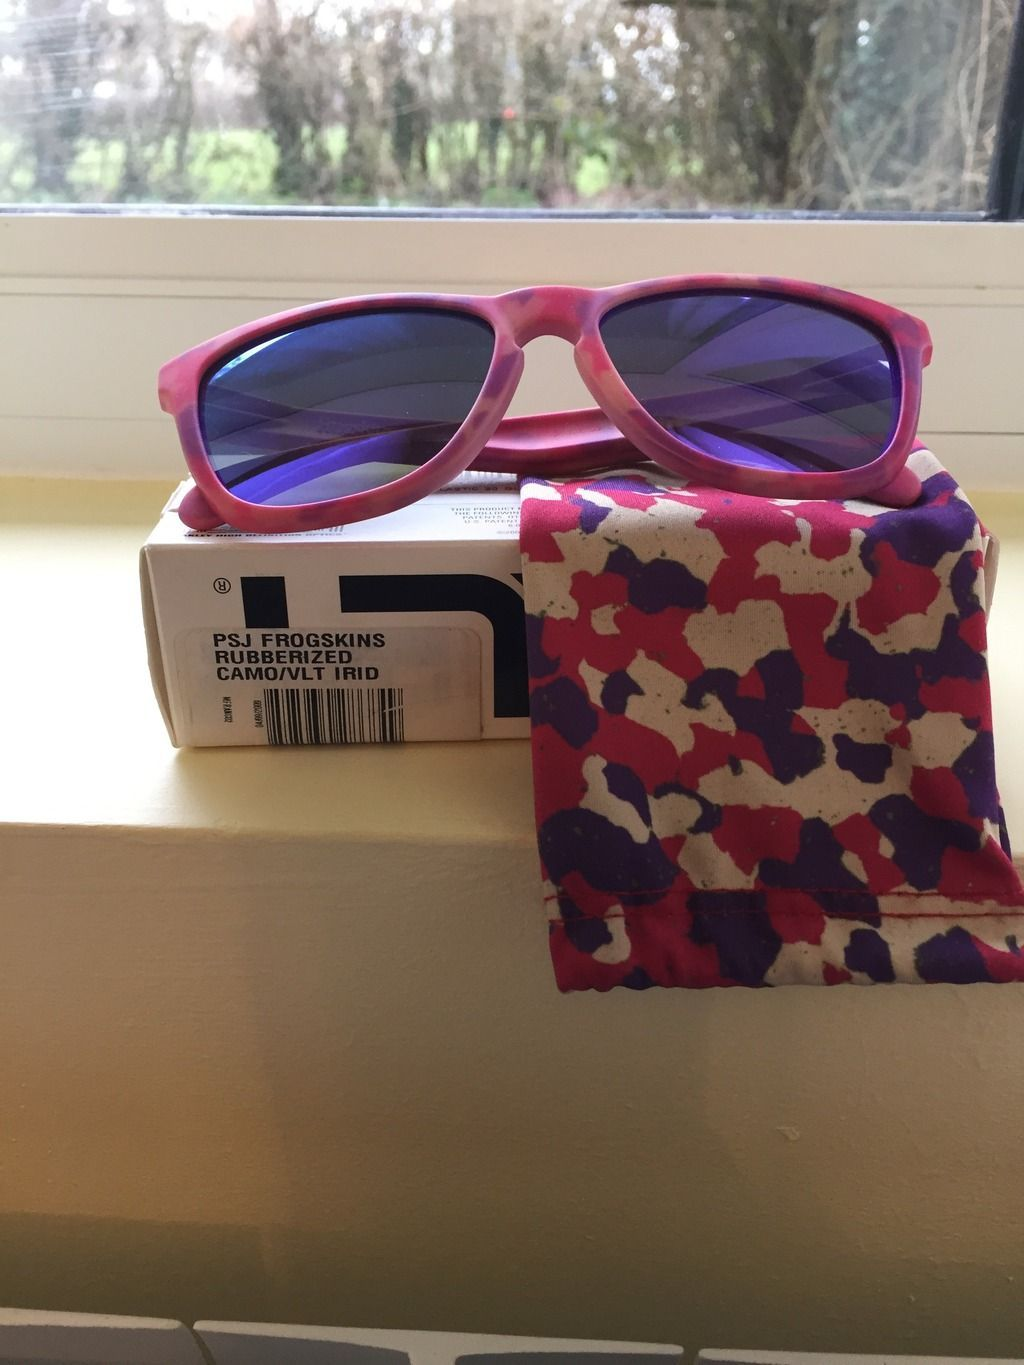 Paul smith frogskins wanted - 6E08365D-B8B0-4719-9F15-FB6A9A8F8150_zpsi6ee3gzh.jpg